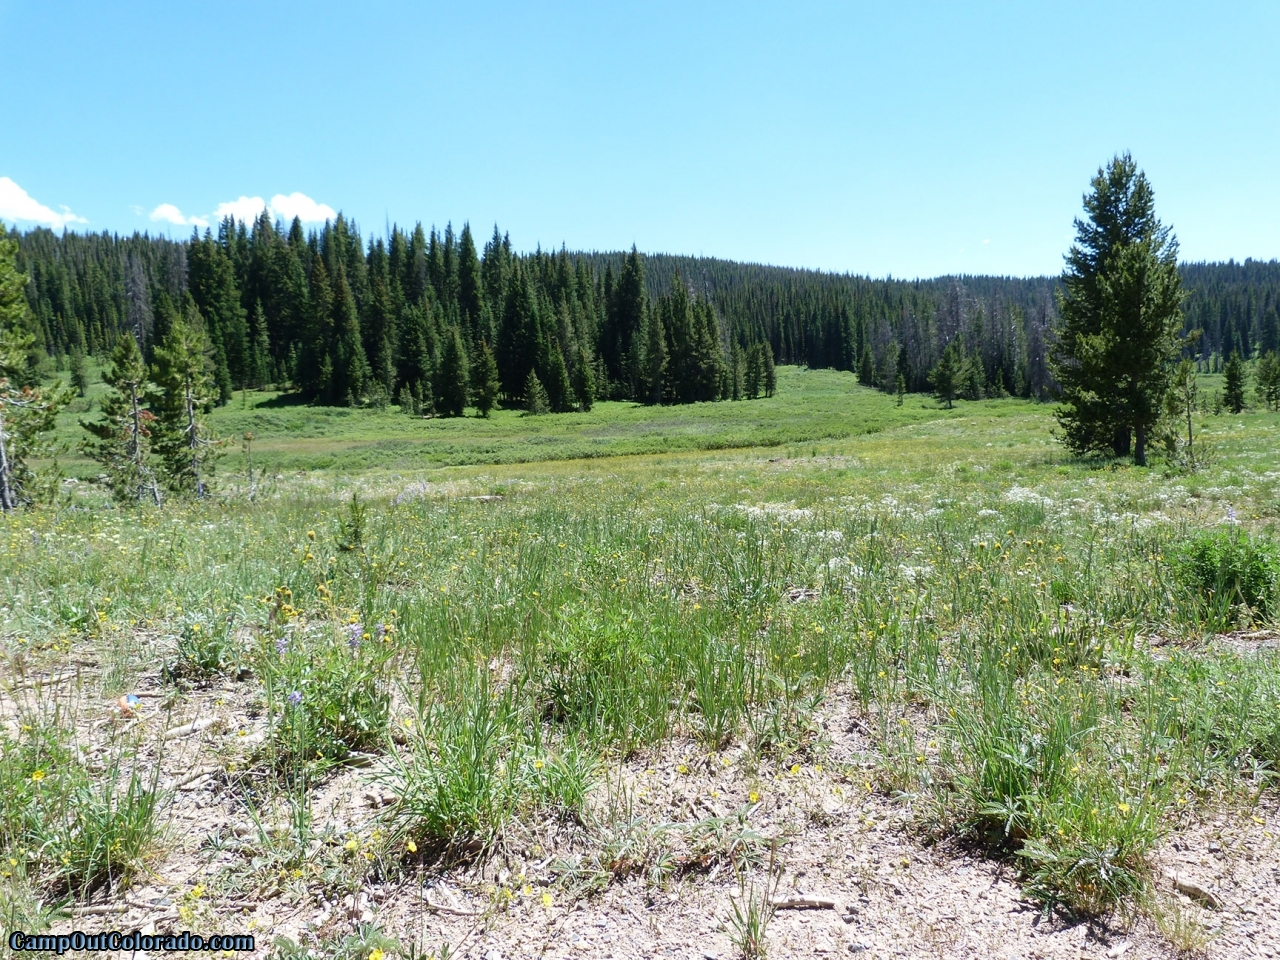 campoutcolorado-meadows-campground-rabbit-ears-open-area